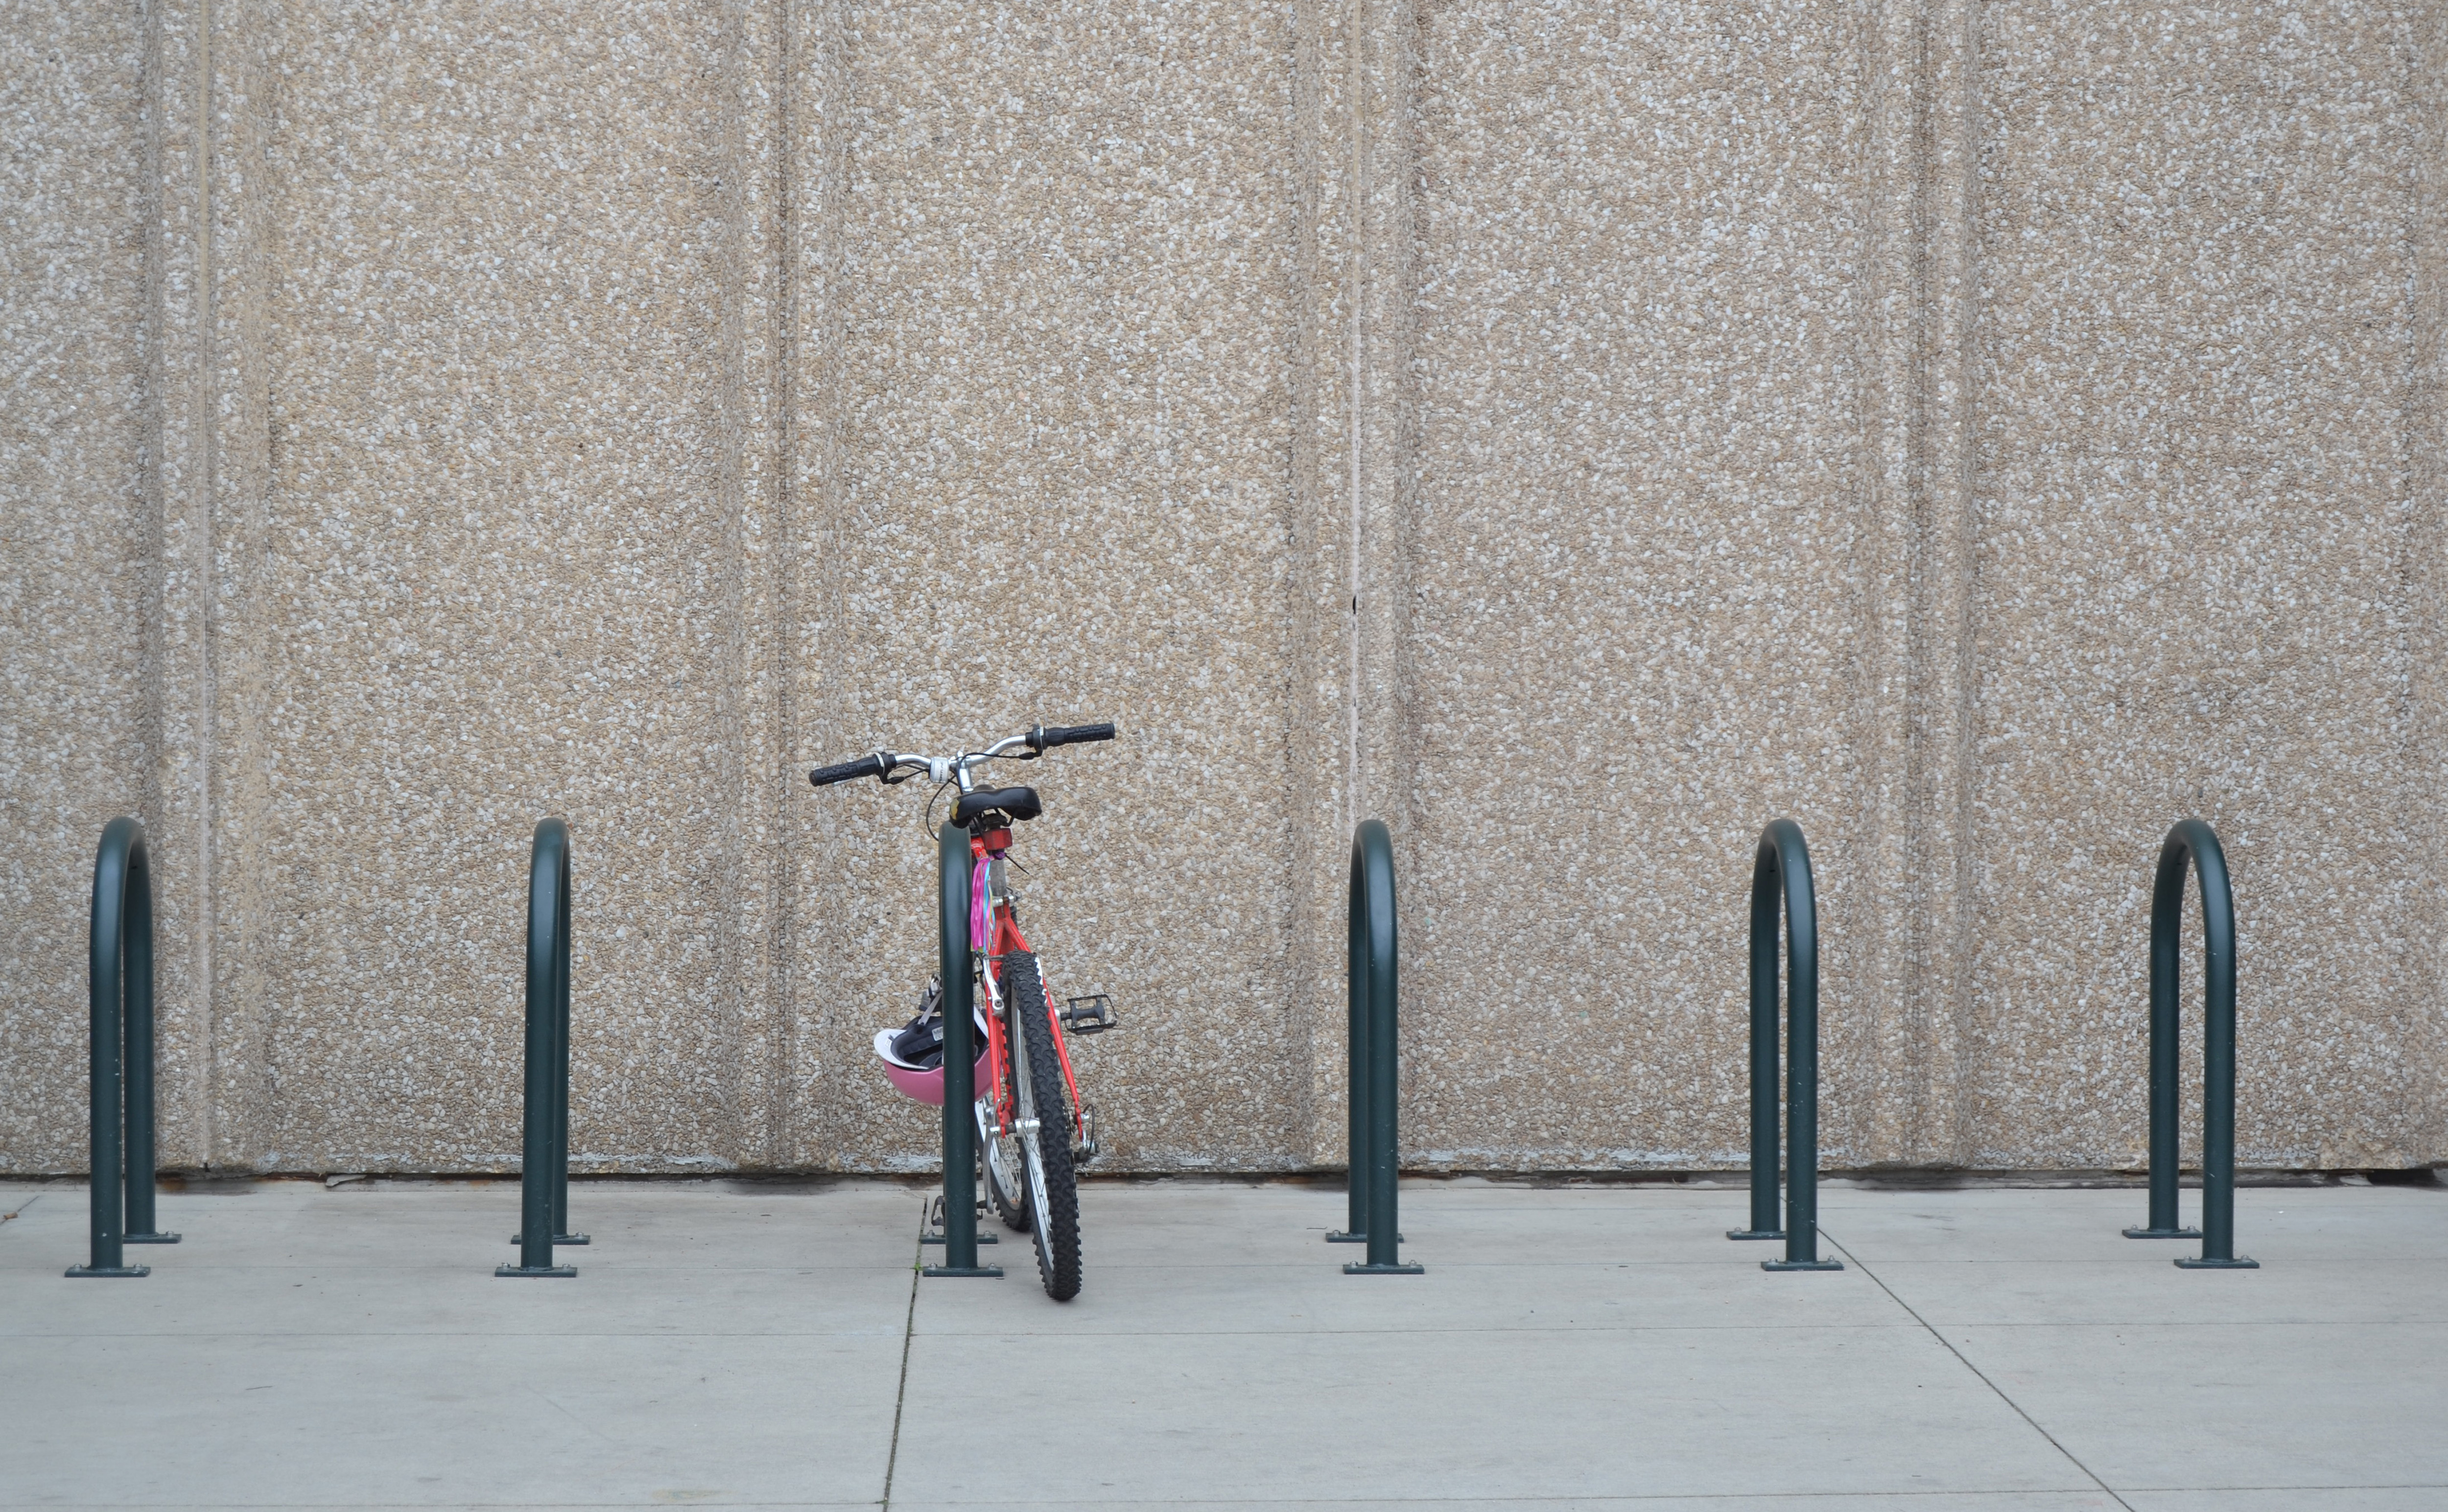 Bike rack in front of concrete wall